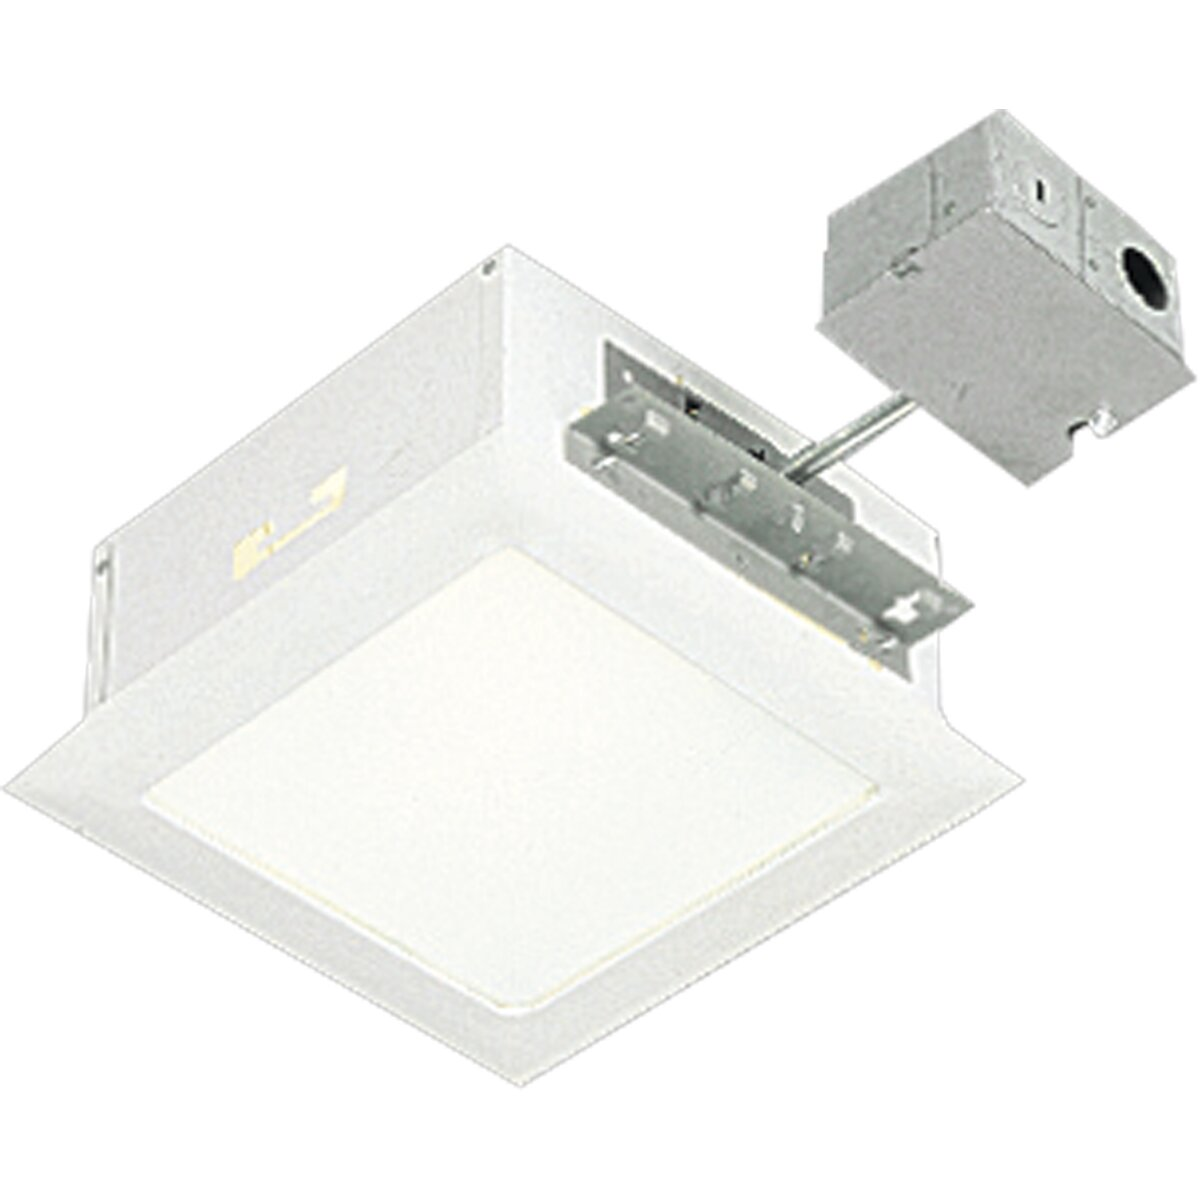 Recessed ceiling curtain track - Recessed Ceiling Mounted Curtain Track Uk Soletcshat